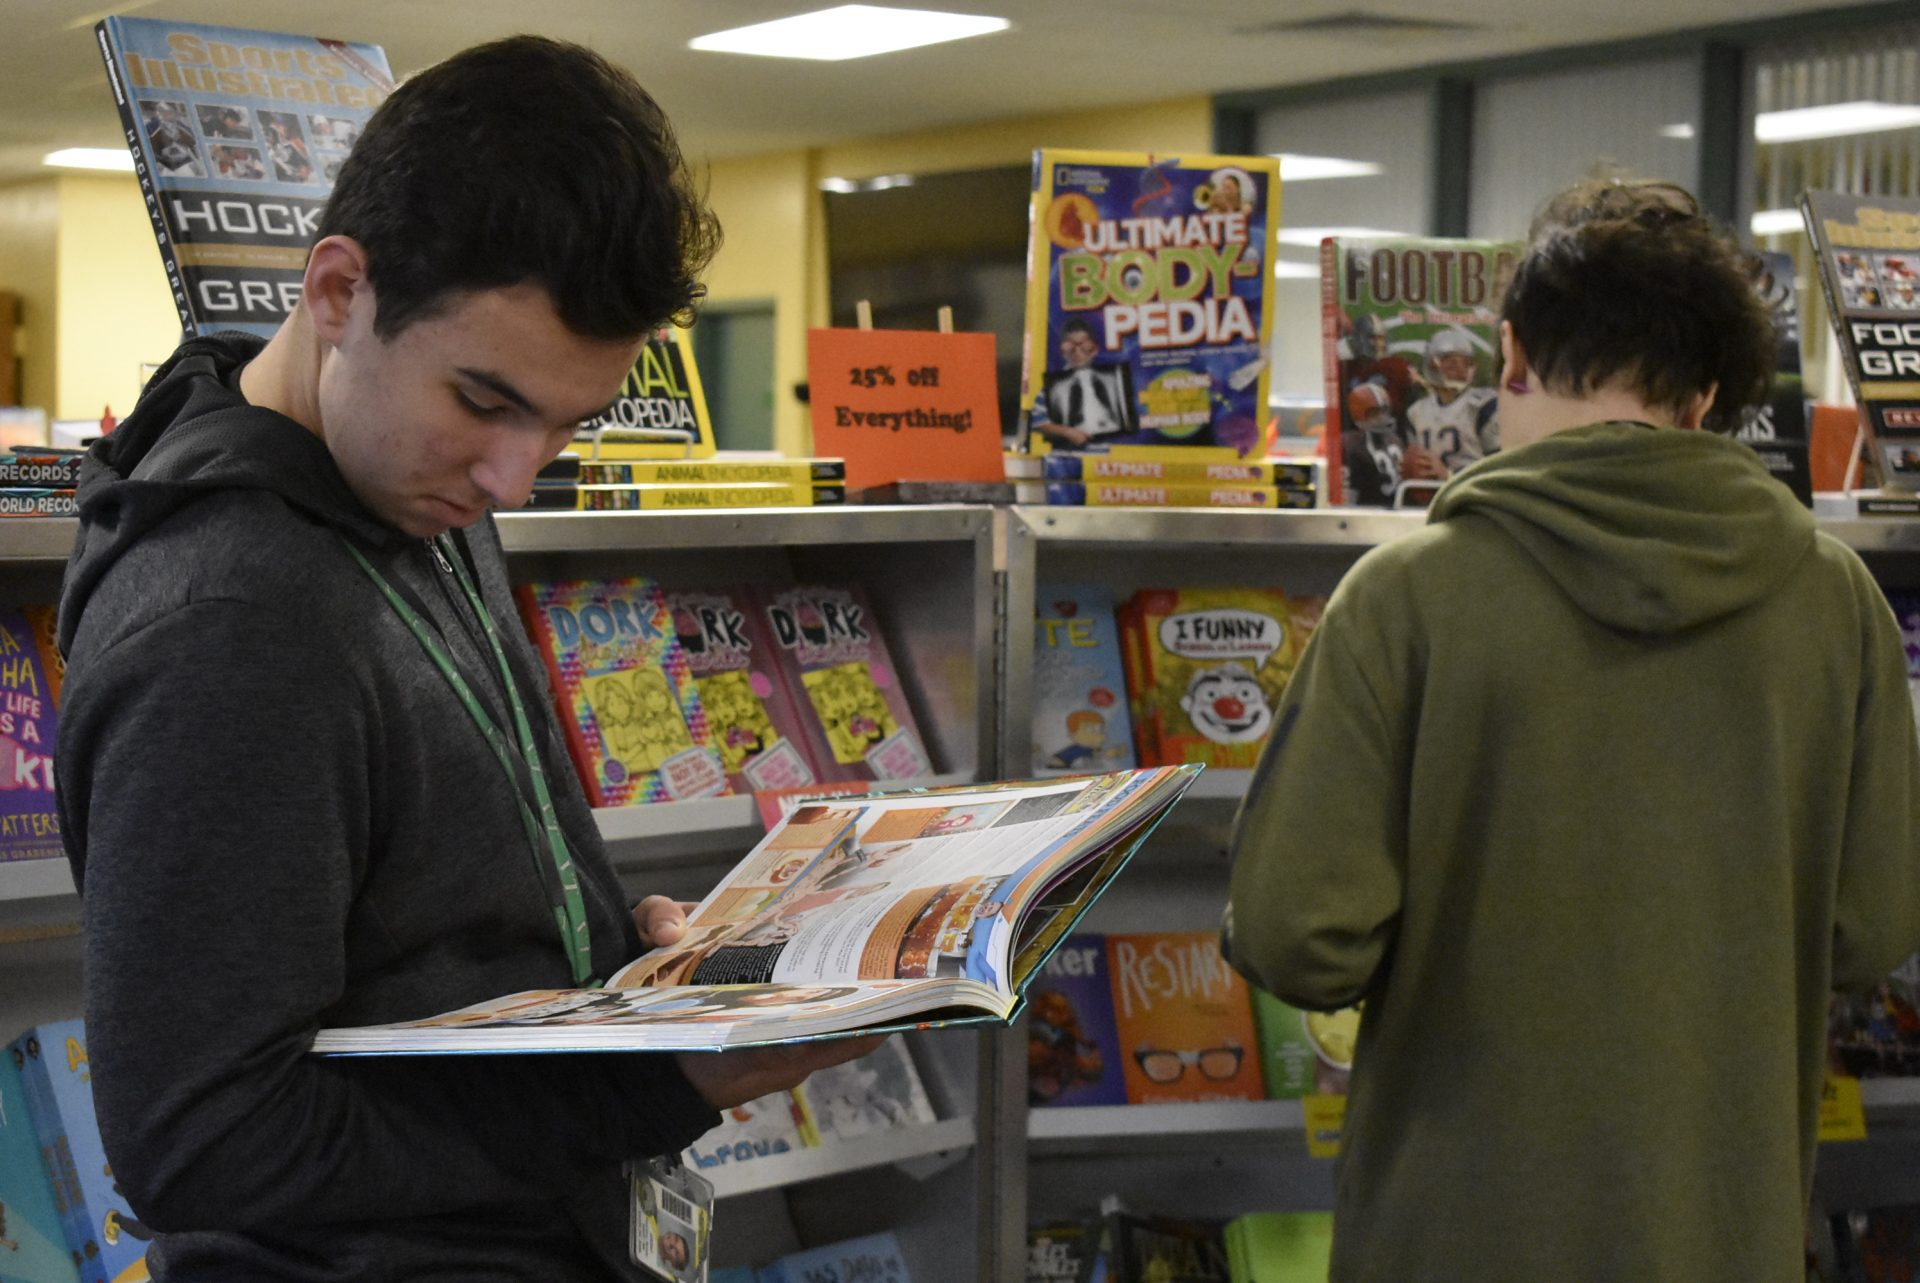 Two Students looking at books with bookshelf in background